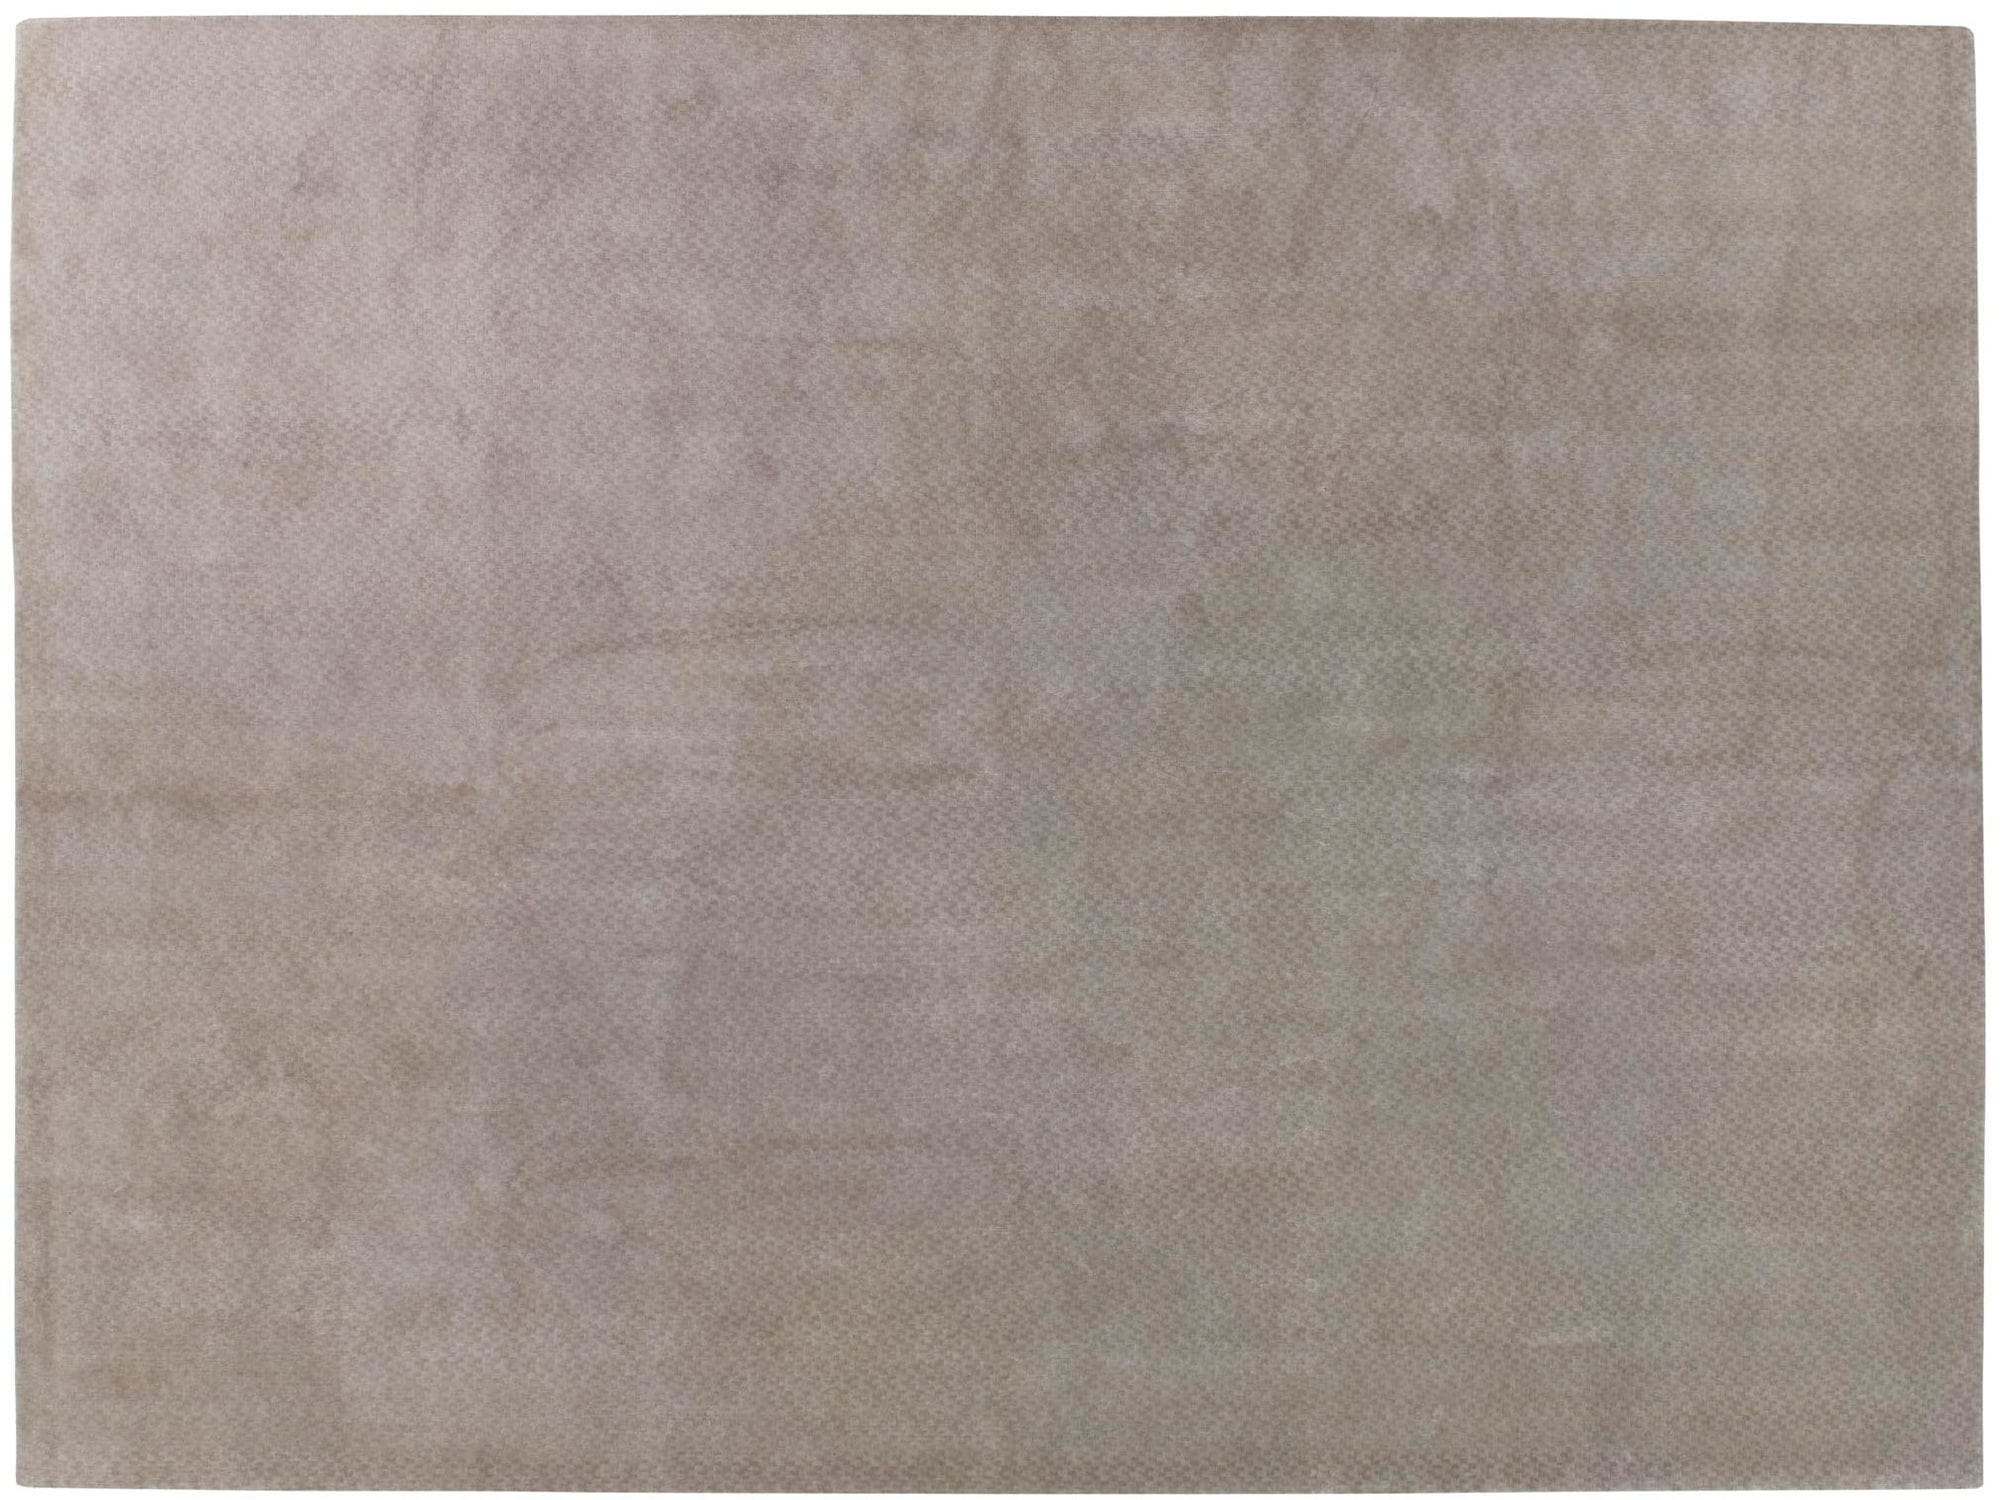 contemporary rug  plain  silk  rectangular  jordan. contemporary rug  plain  silk  rectangular  jordan  designer